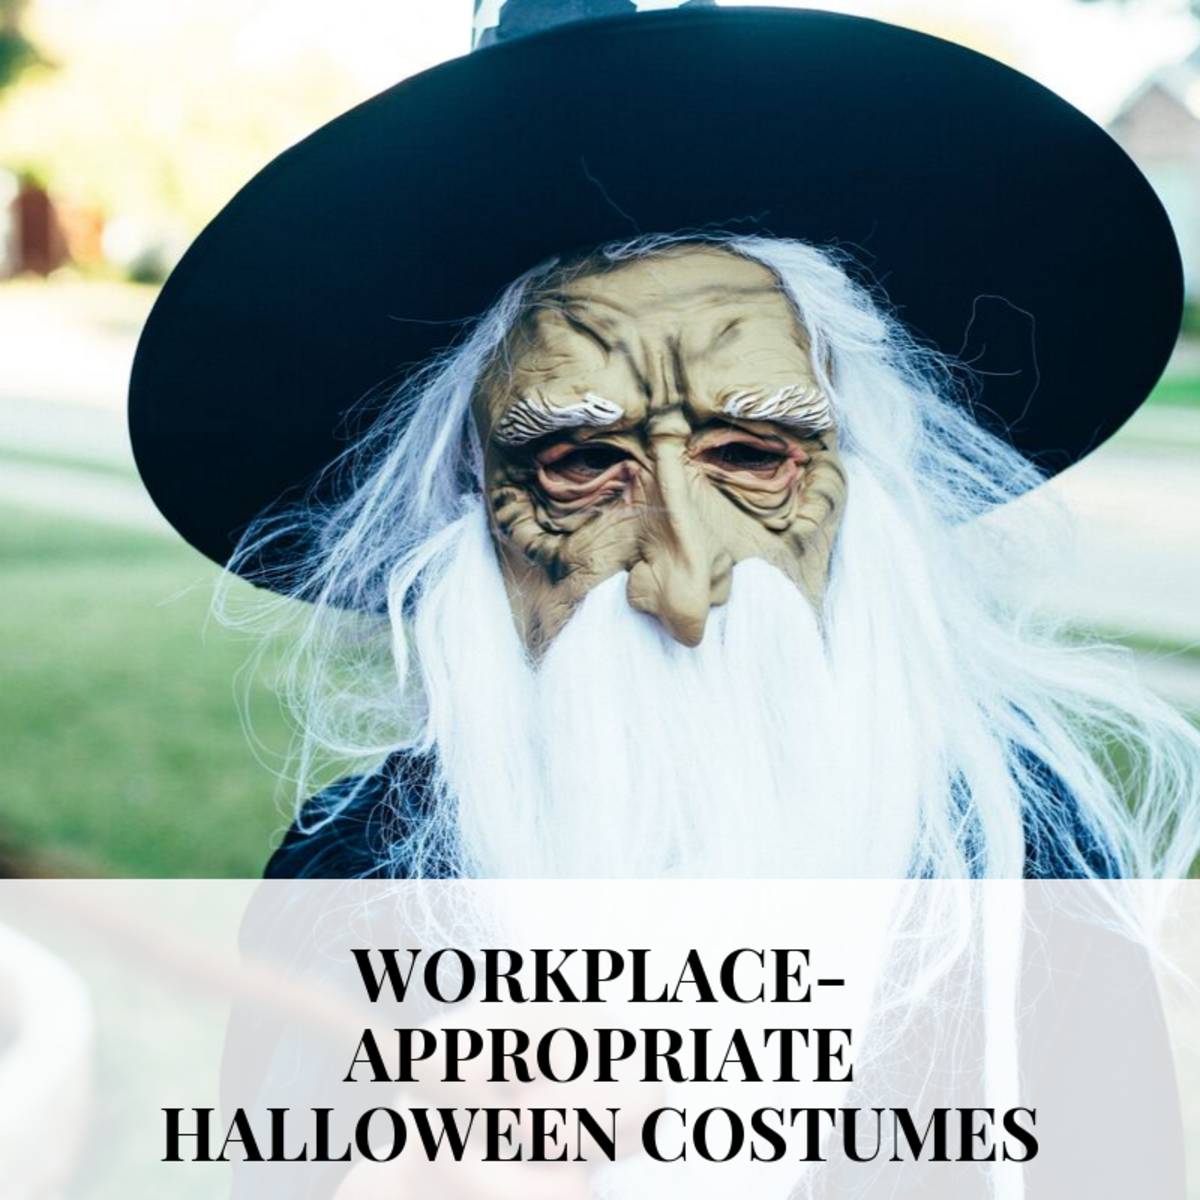 These Halloween costume ideas are great for the workplace!